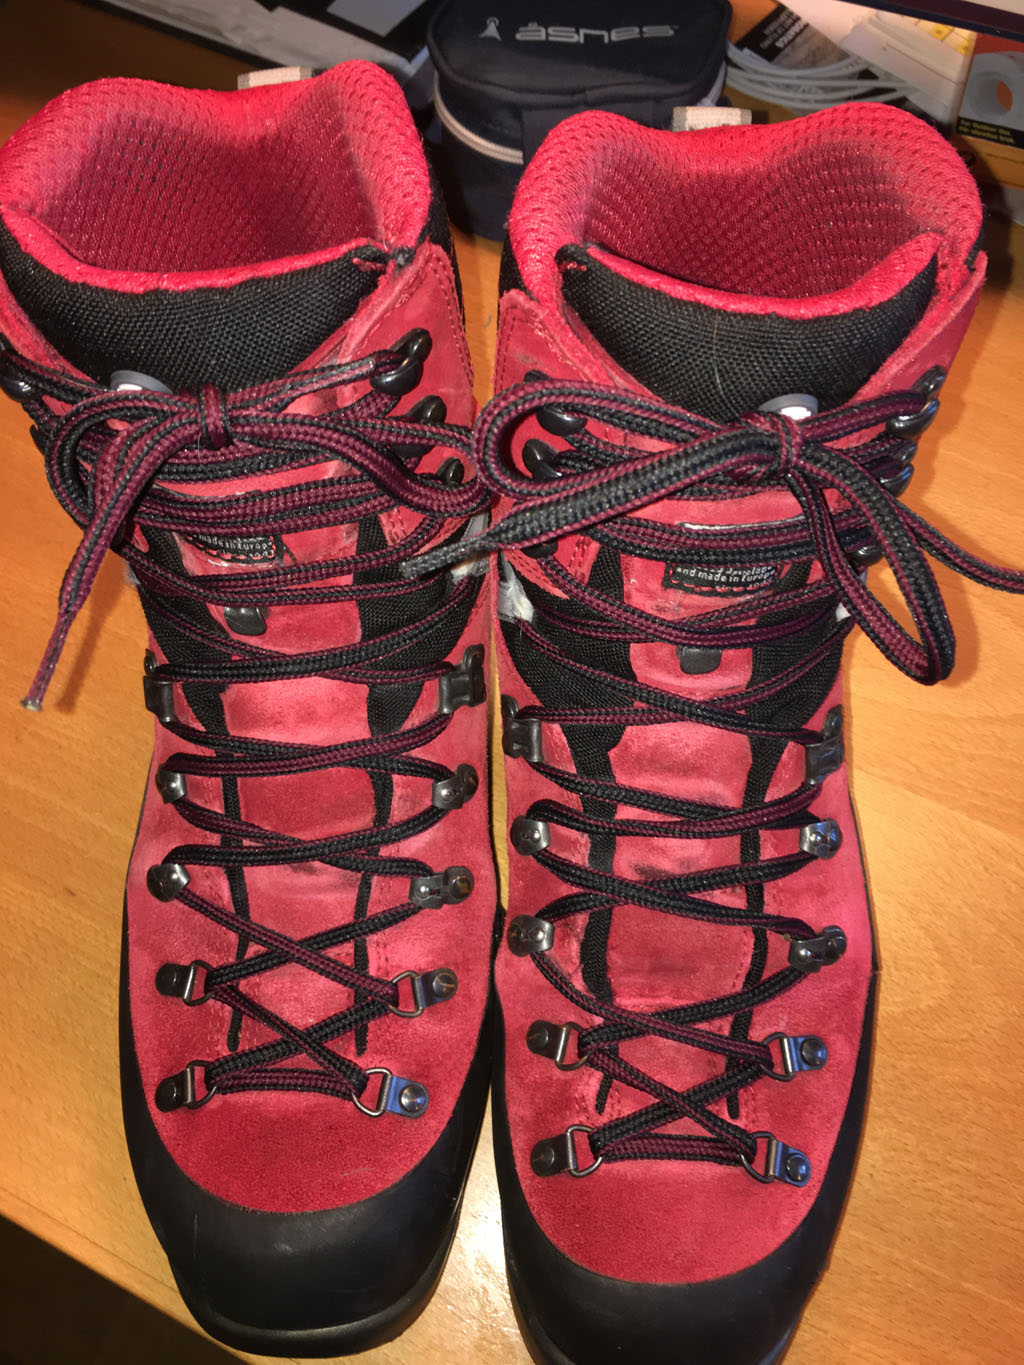 Alpina_Alaska_BC_new_shoelaces.jpg